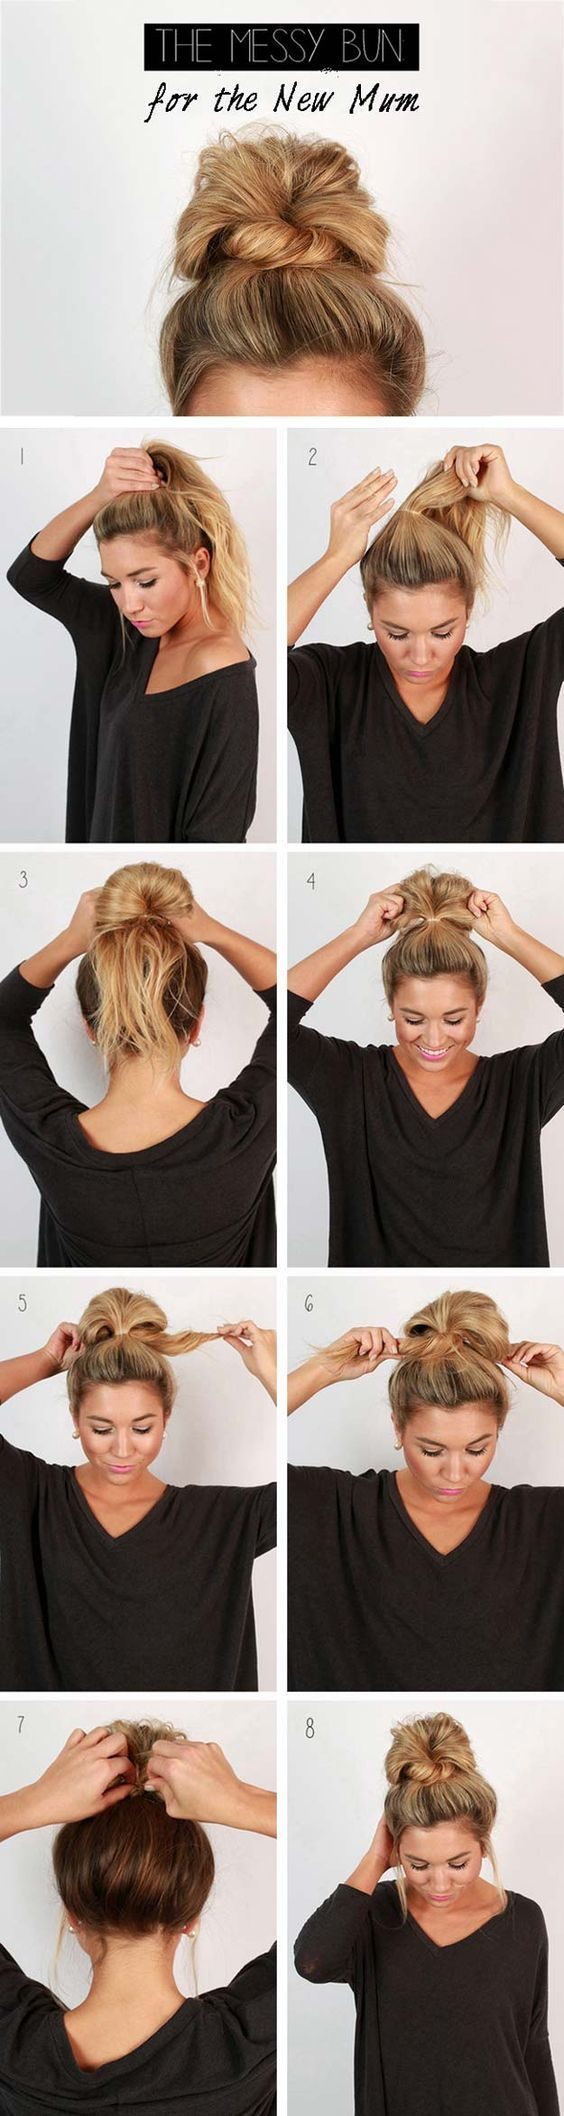 Prime 1000 Ideas About Formal Bun On Pinterest Hairstyles With Short Hairstyles For Black Women Fulllsitofus